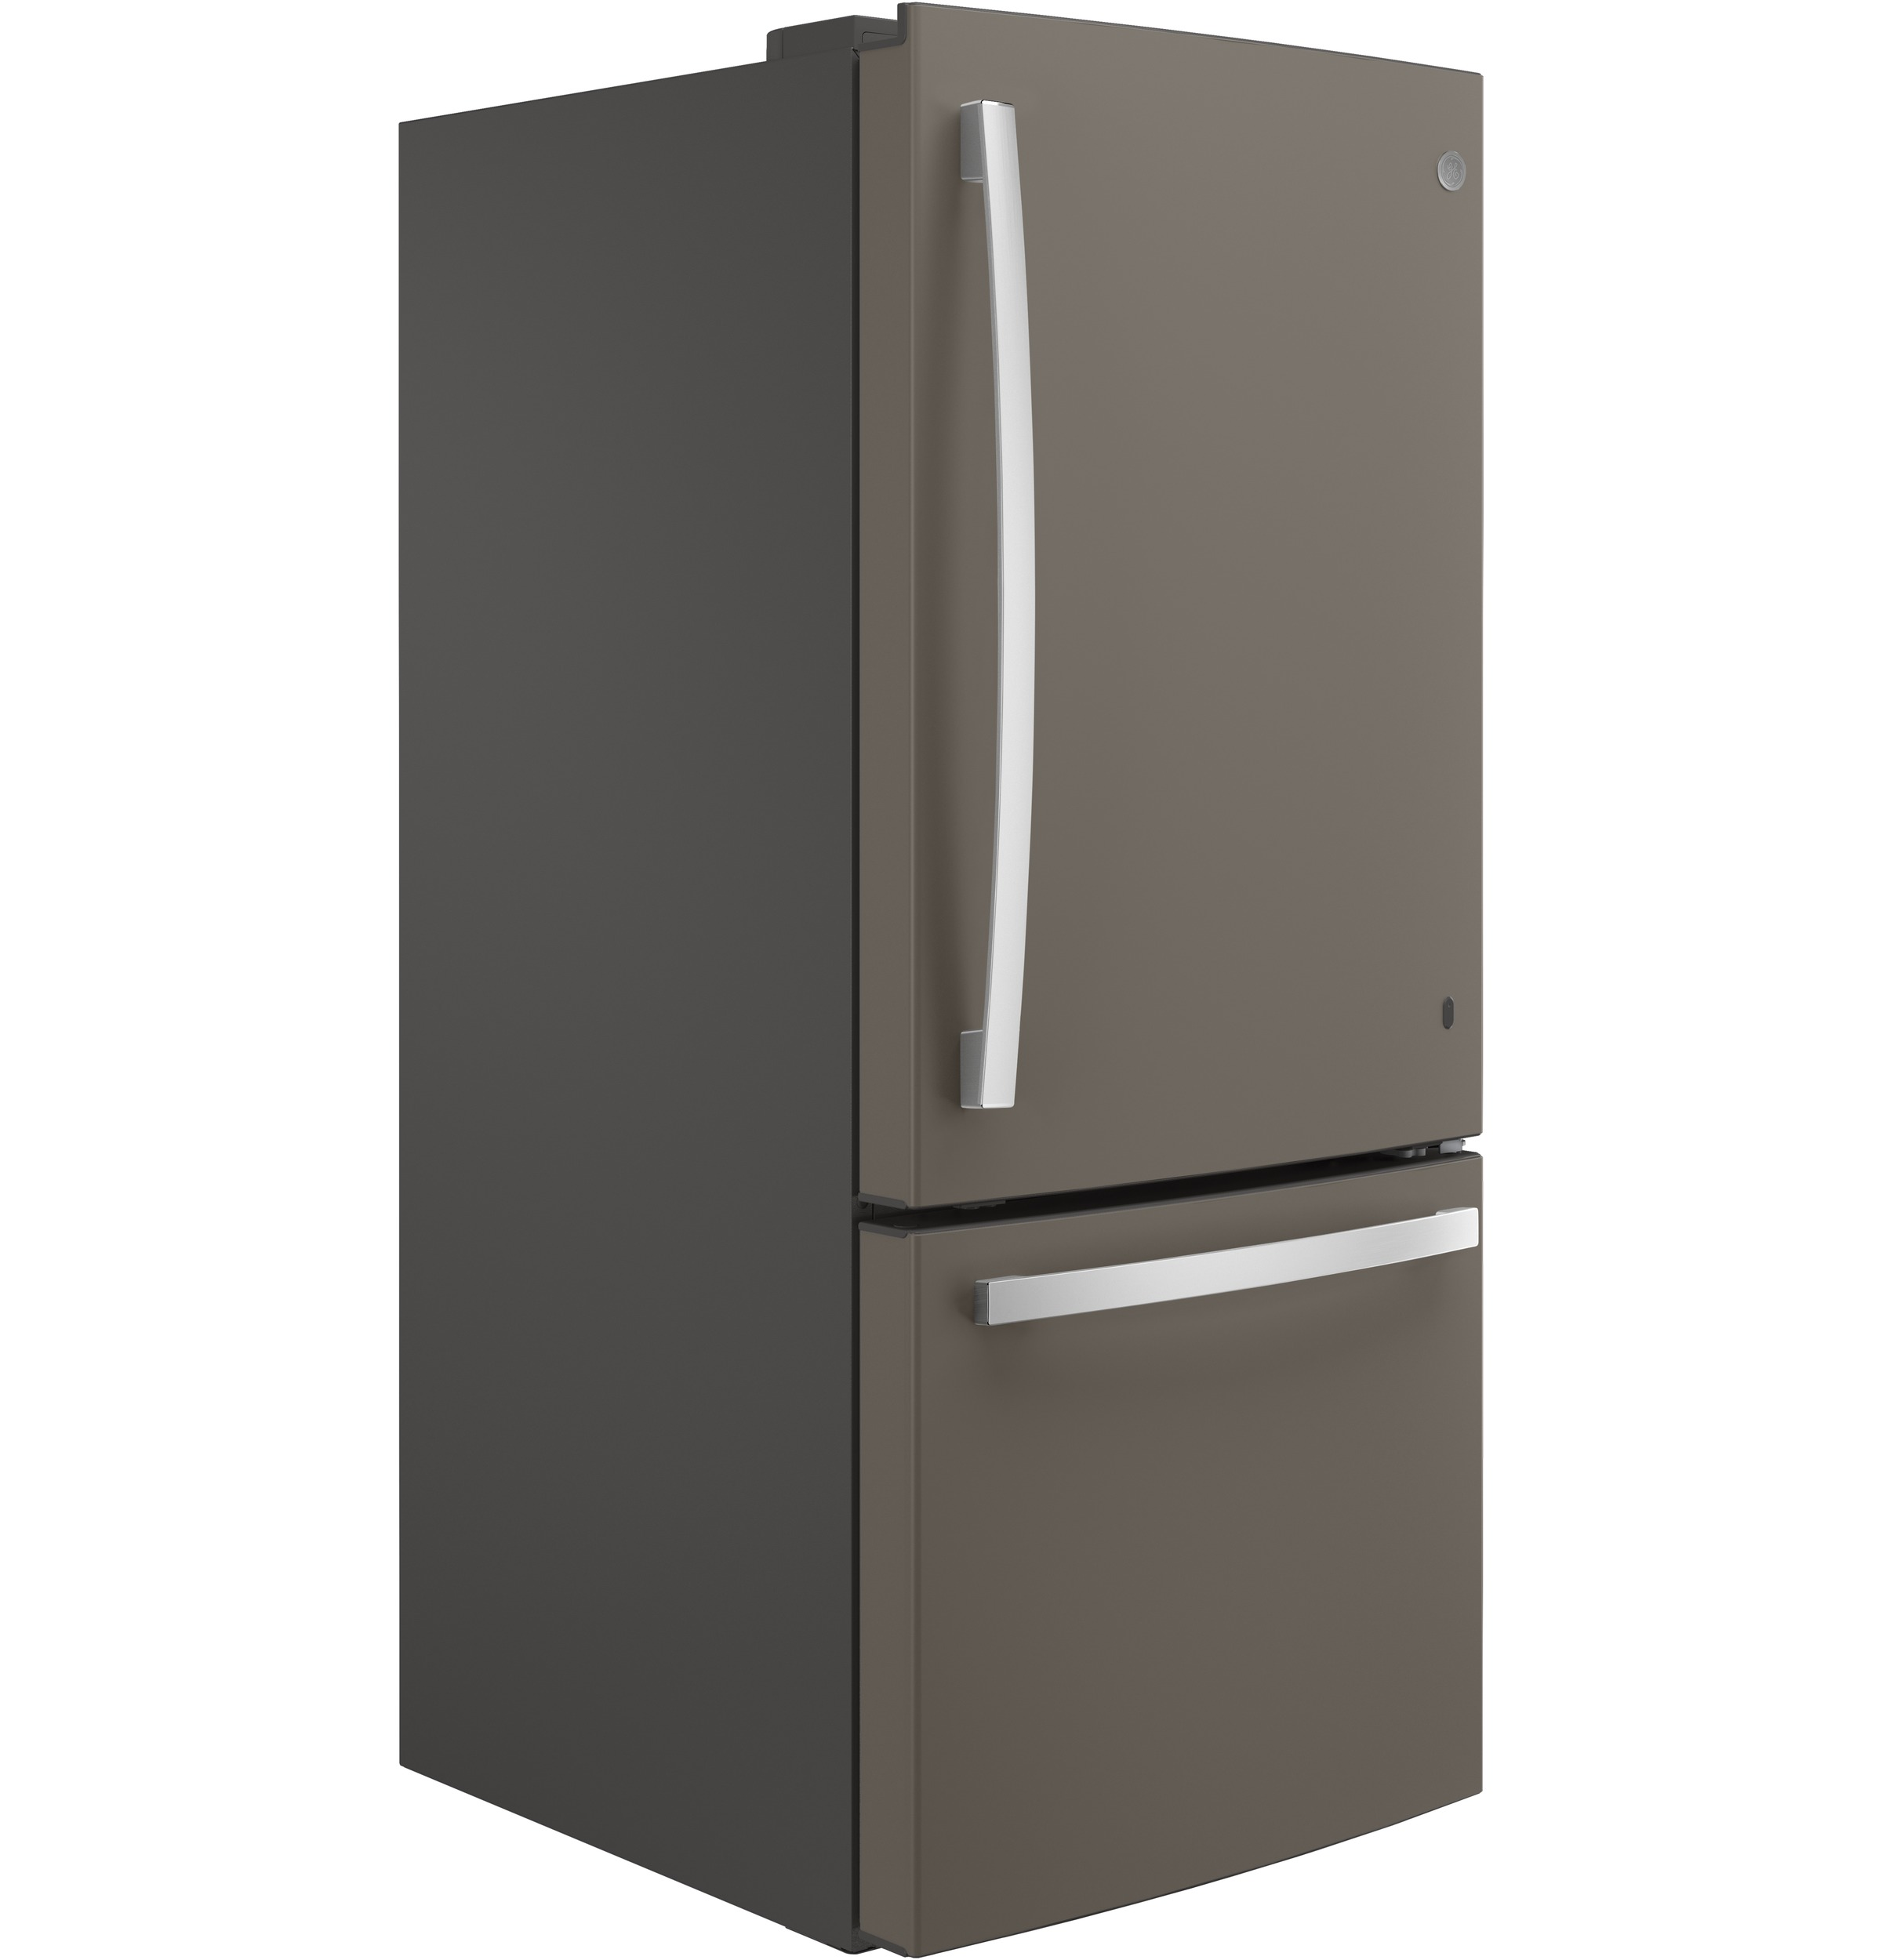 Model: GDE21EMKES | GE GE® ENERGY STAR® 21.0 Cu. Ft. Bottom-Freezer Refrigerator